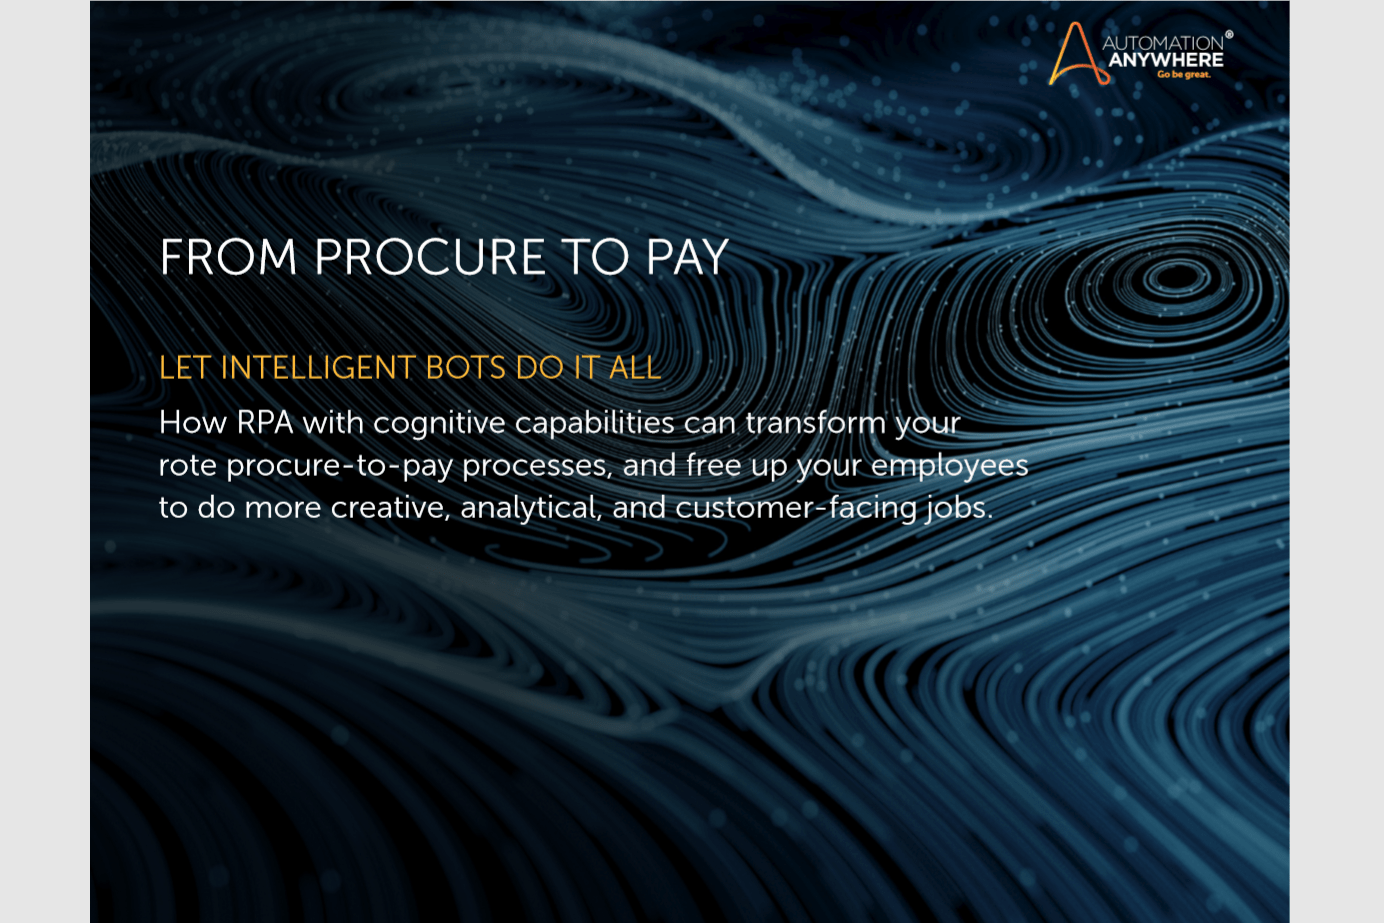 [Whitepaper] RPA - From Procure to Pay